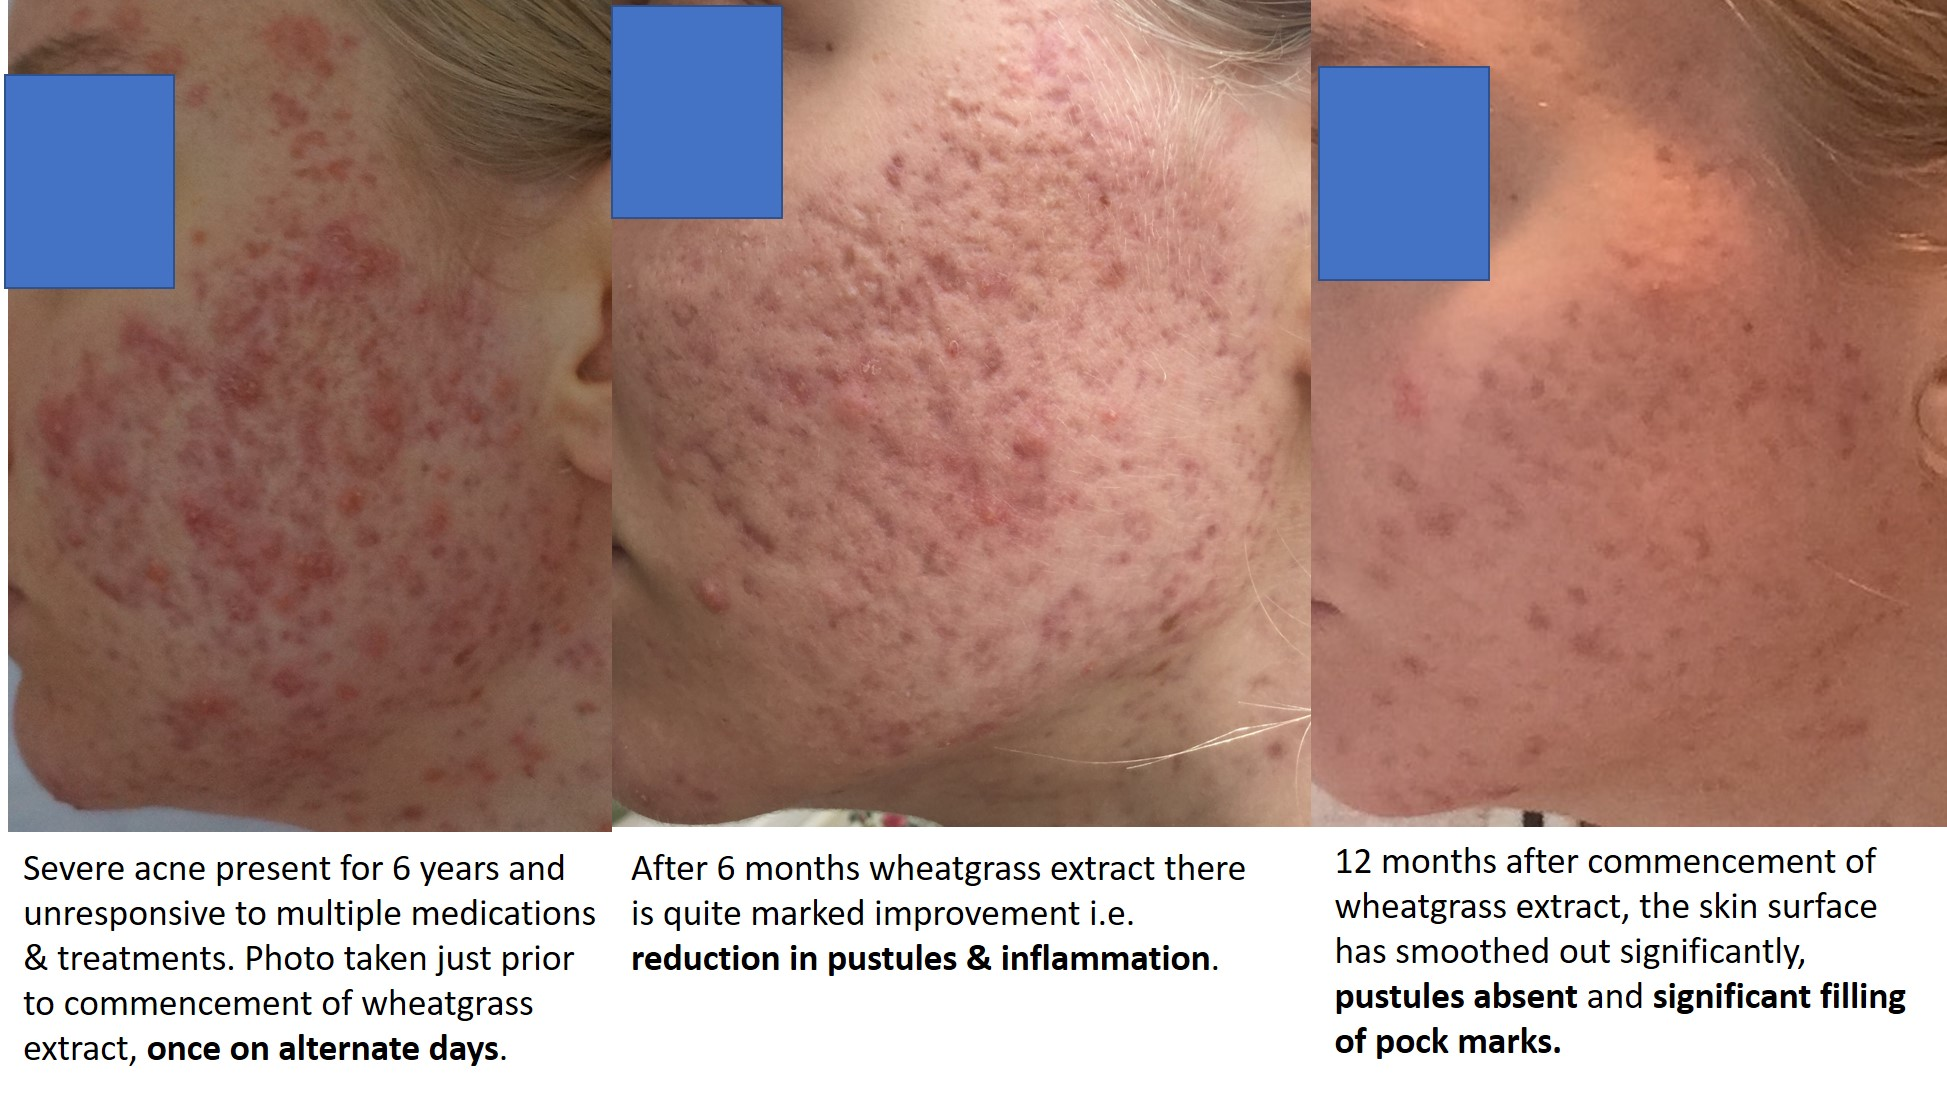 Severe acne vulgaris for six years significantly improved with wheatgrass extract.